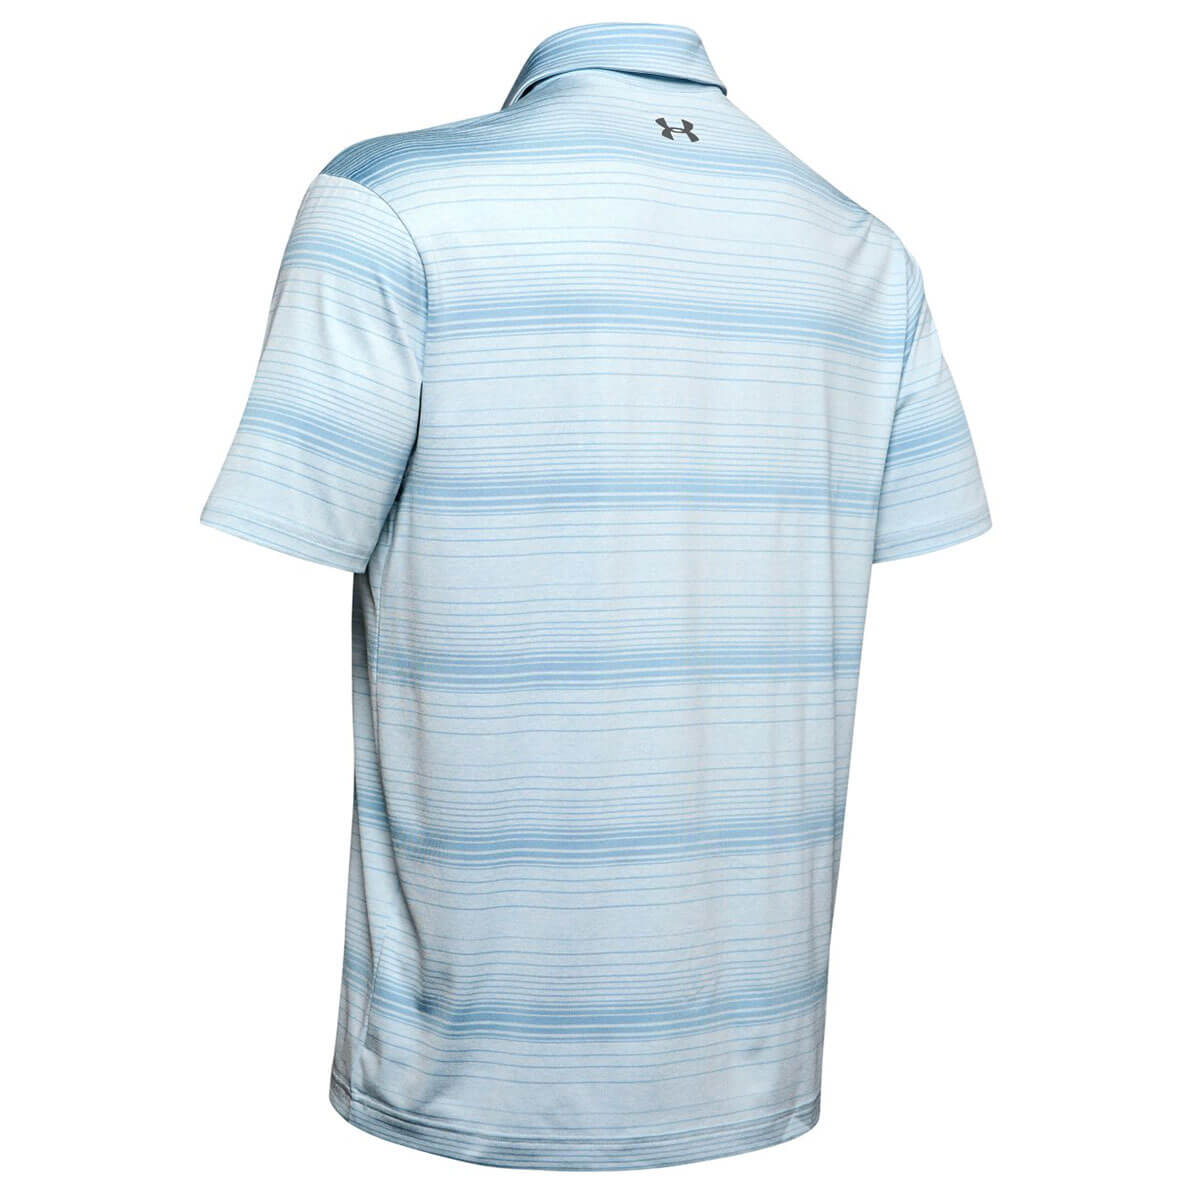 Under-Armour-Mens-2019-Playoff-Polo-2-0-Breathable-Light-Stretch-Polo-Shirt thumbnail 67